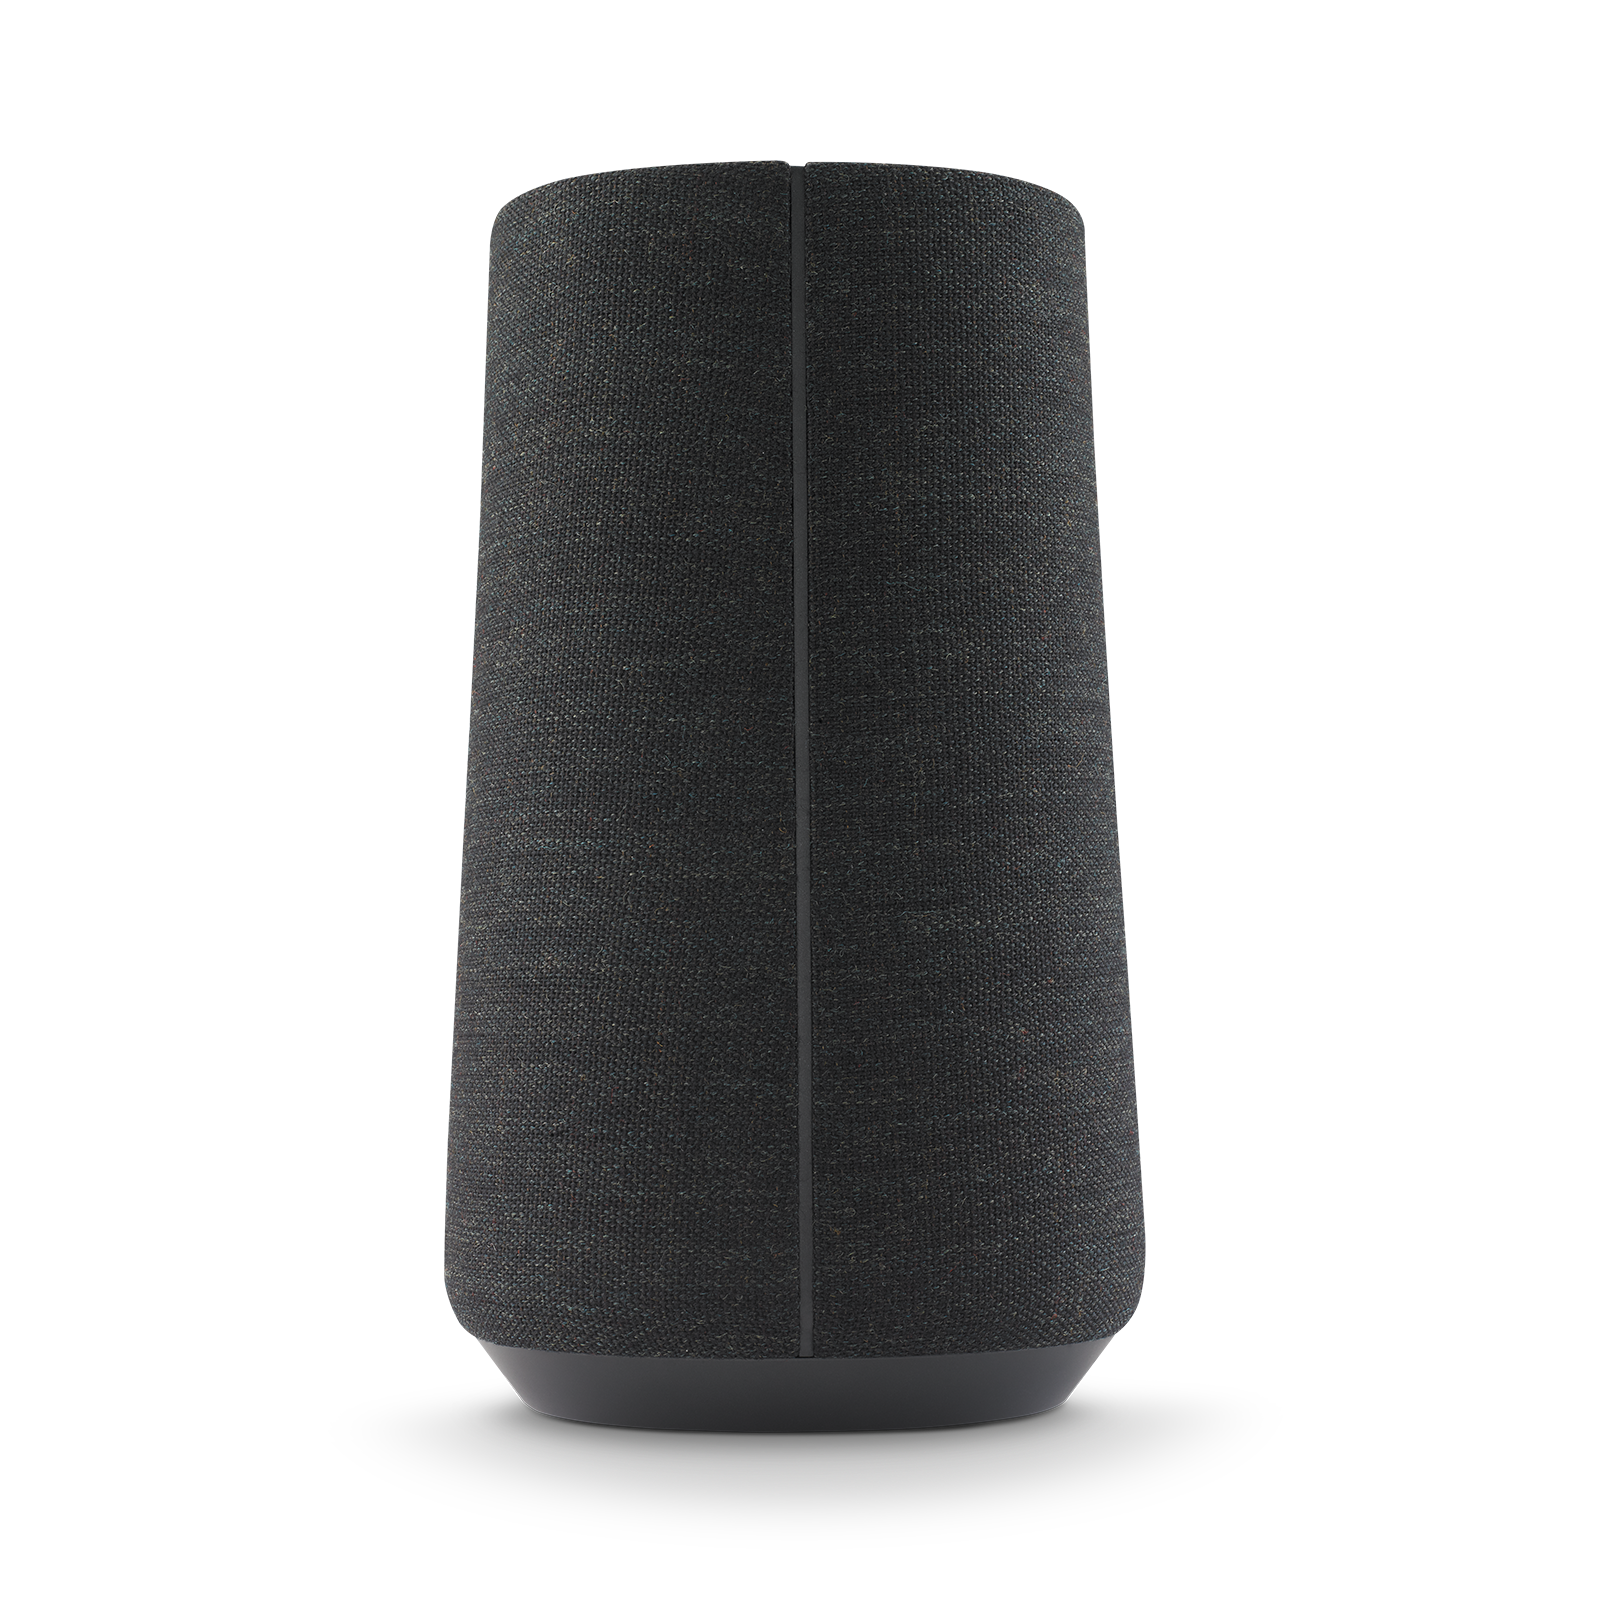 Harman Kardon Citation 100 - Black - The smallest, smartest home speaker with impactful sound - Detailshot 1